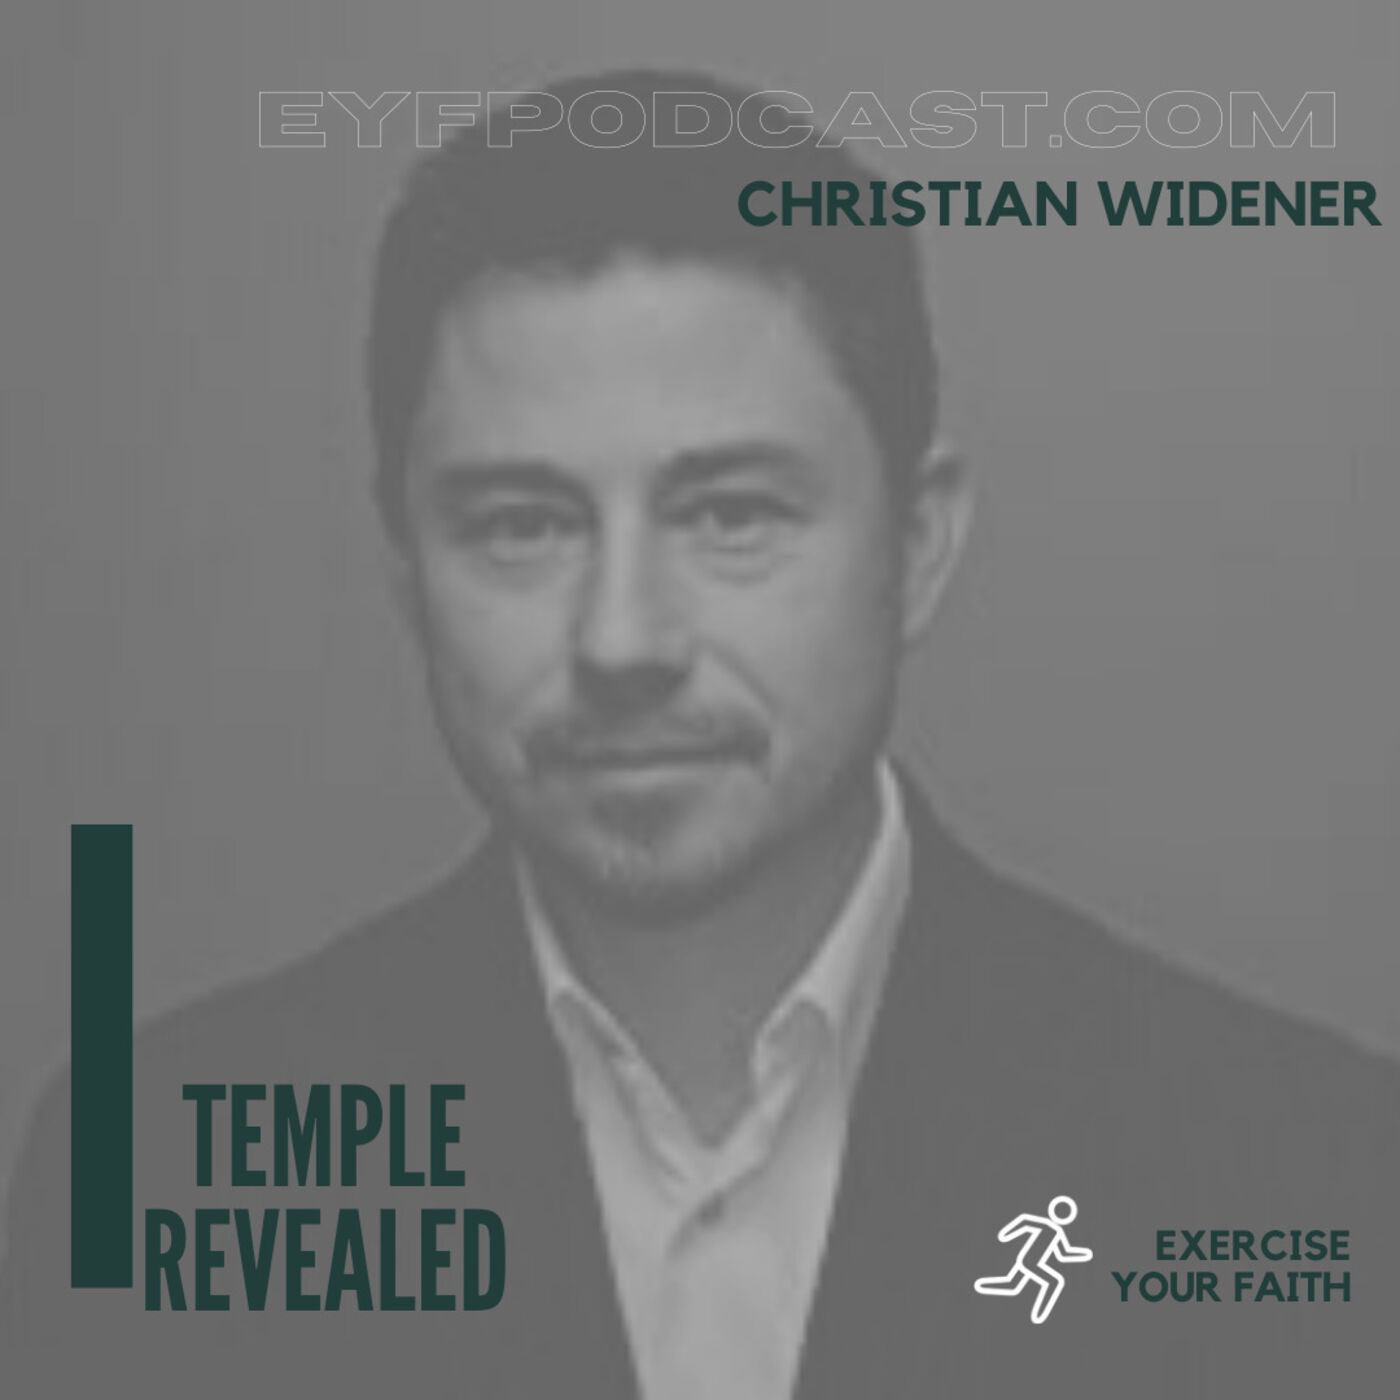 EYFPodcast- Exercise your Faith by examining the past to see God's future. We welcome Christian Widener to the Podcast today